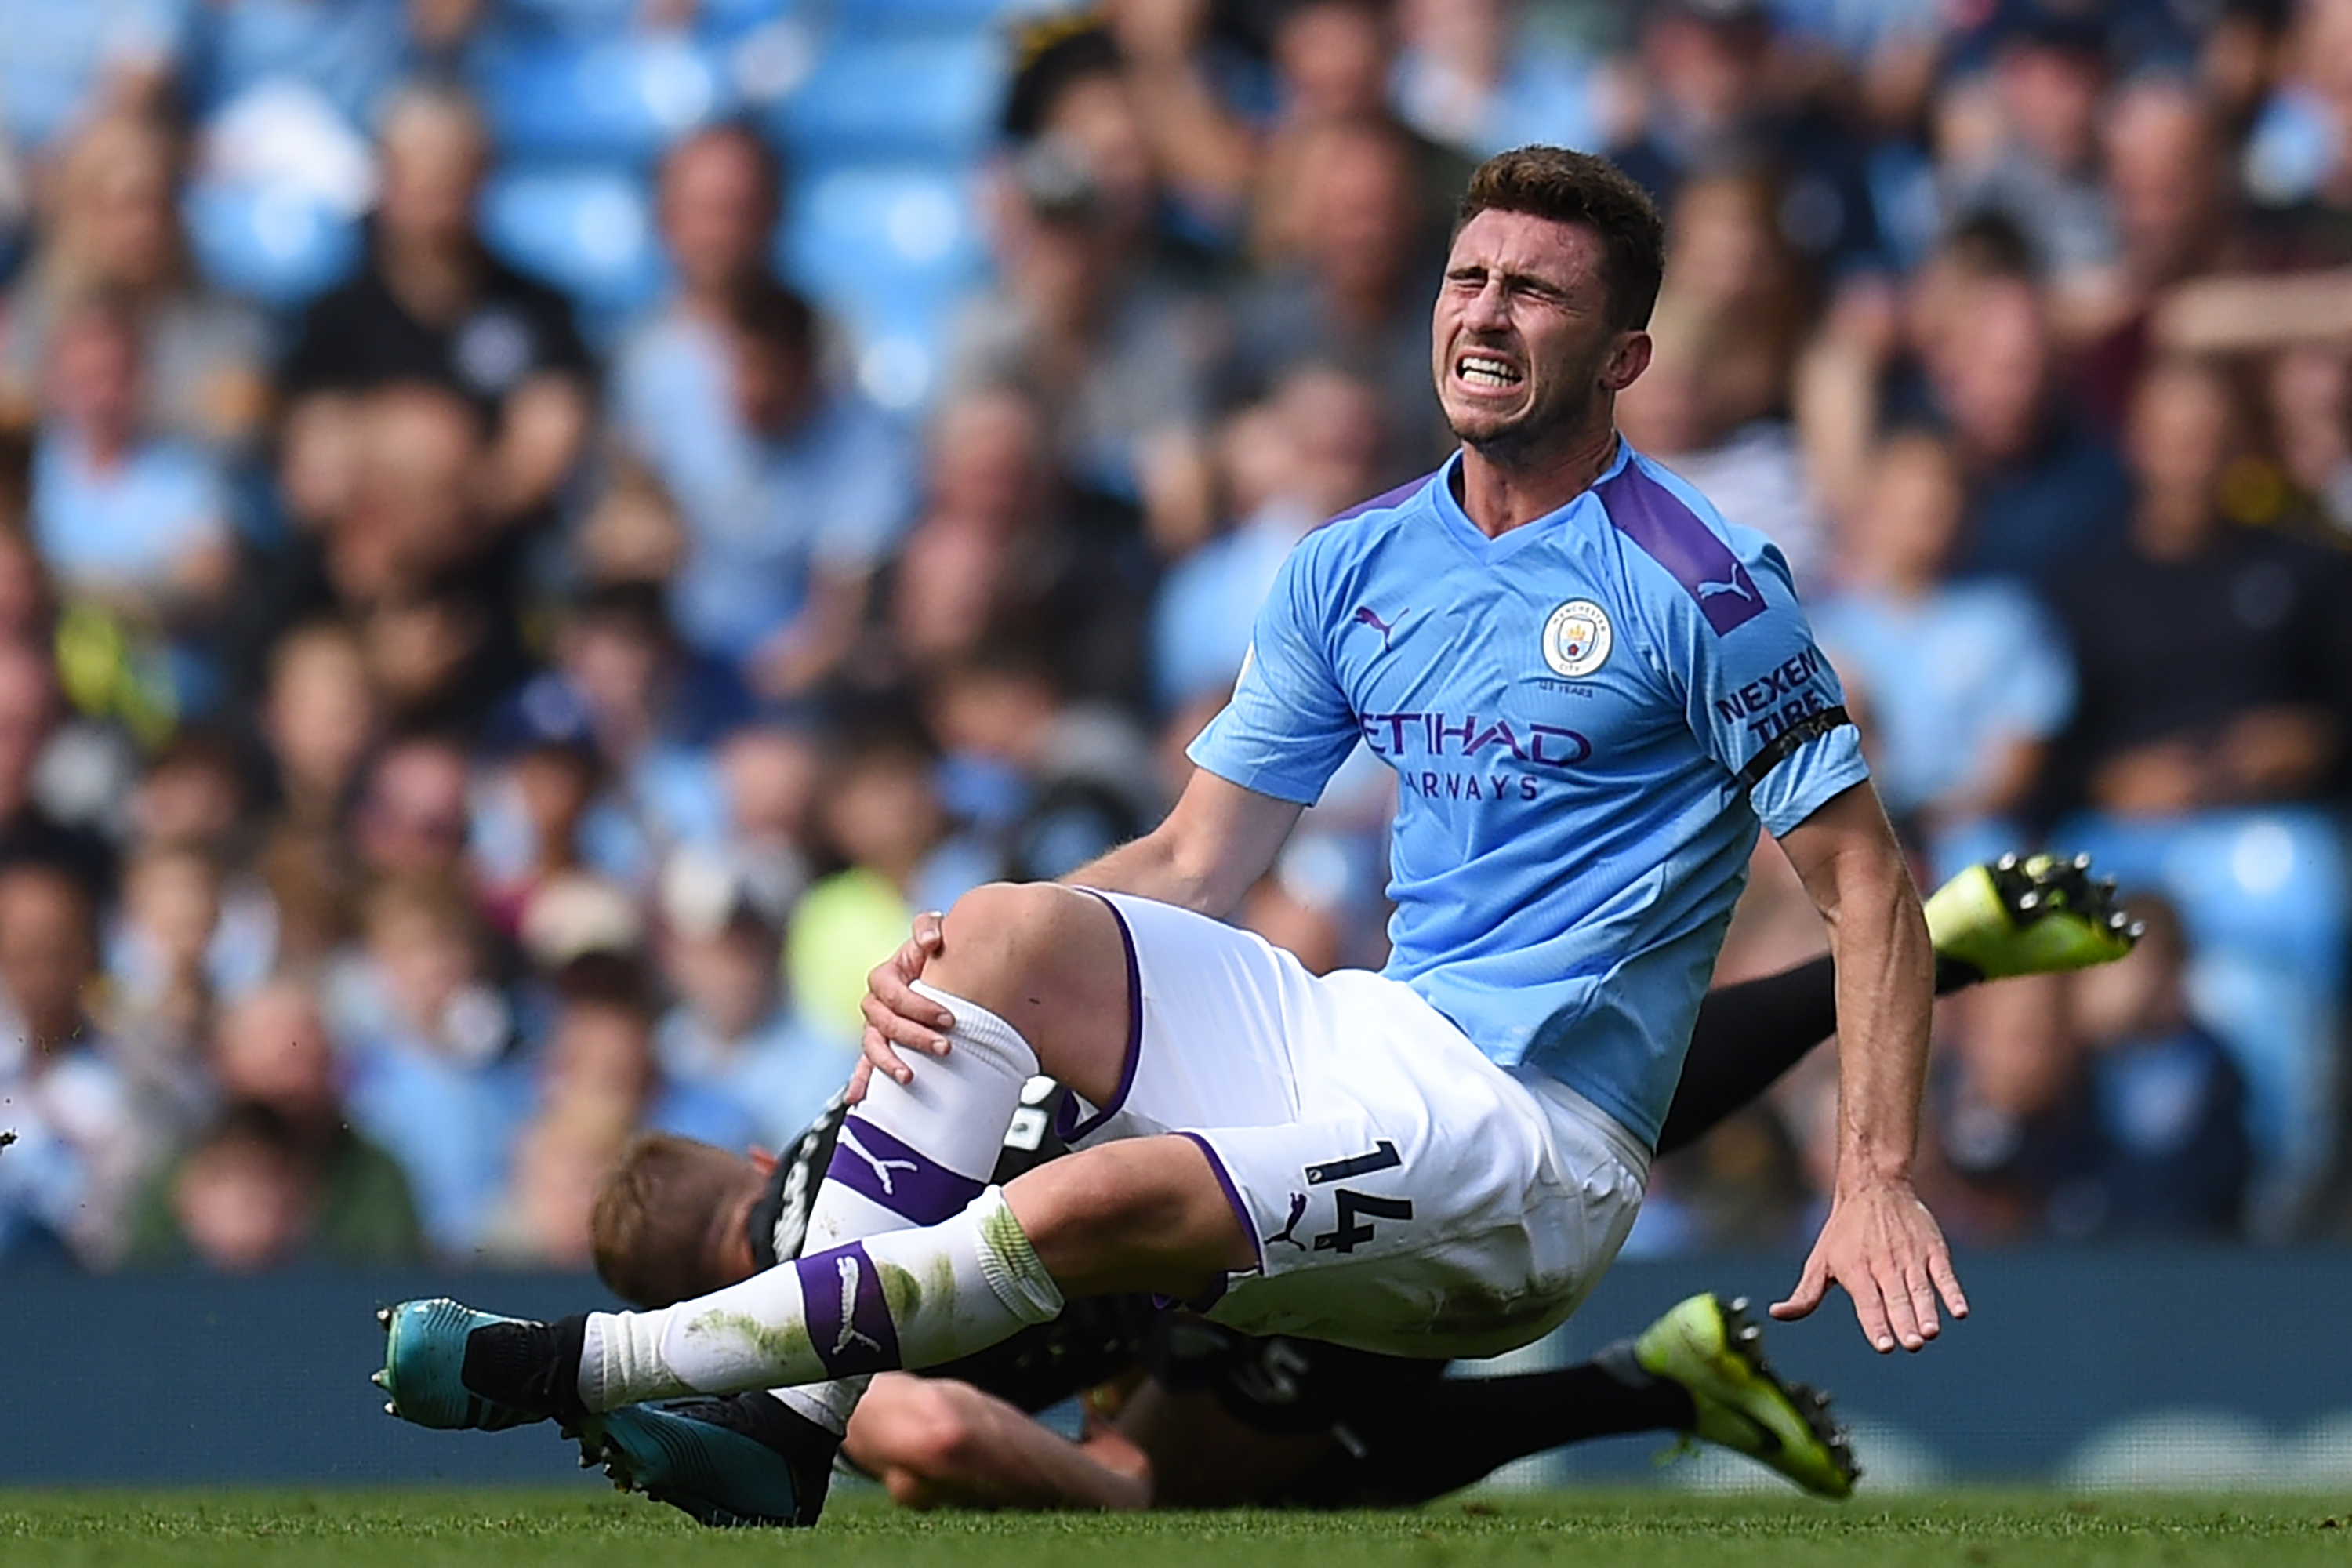 Laporte Going down after sustaining a knee injury Vs Brighton on August 31 2019